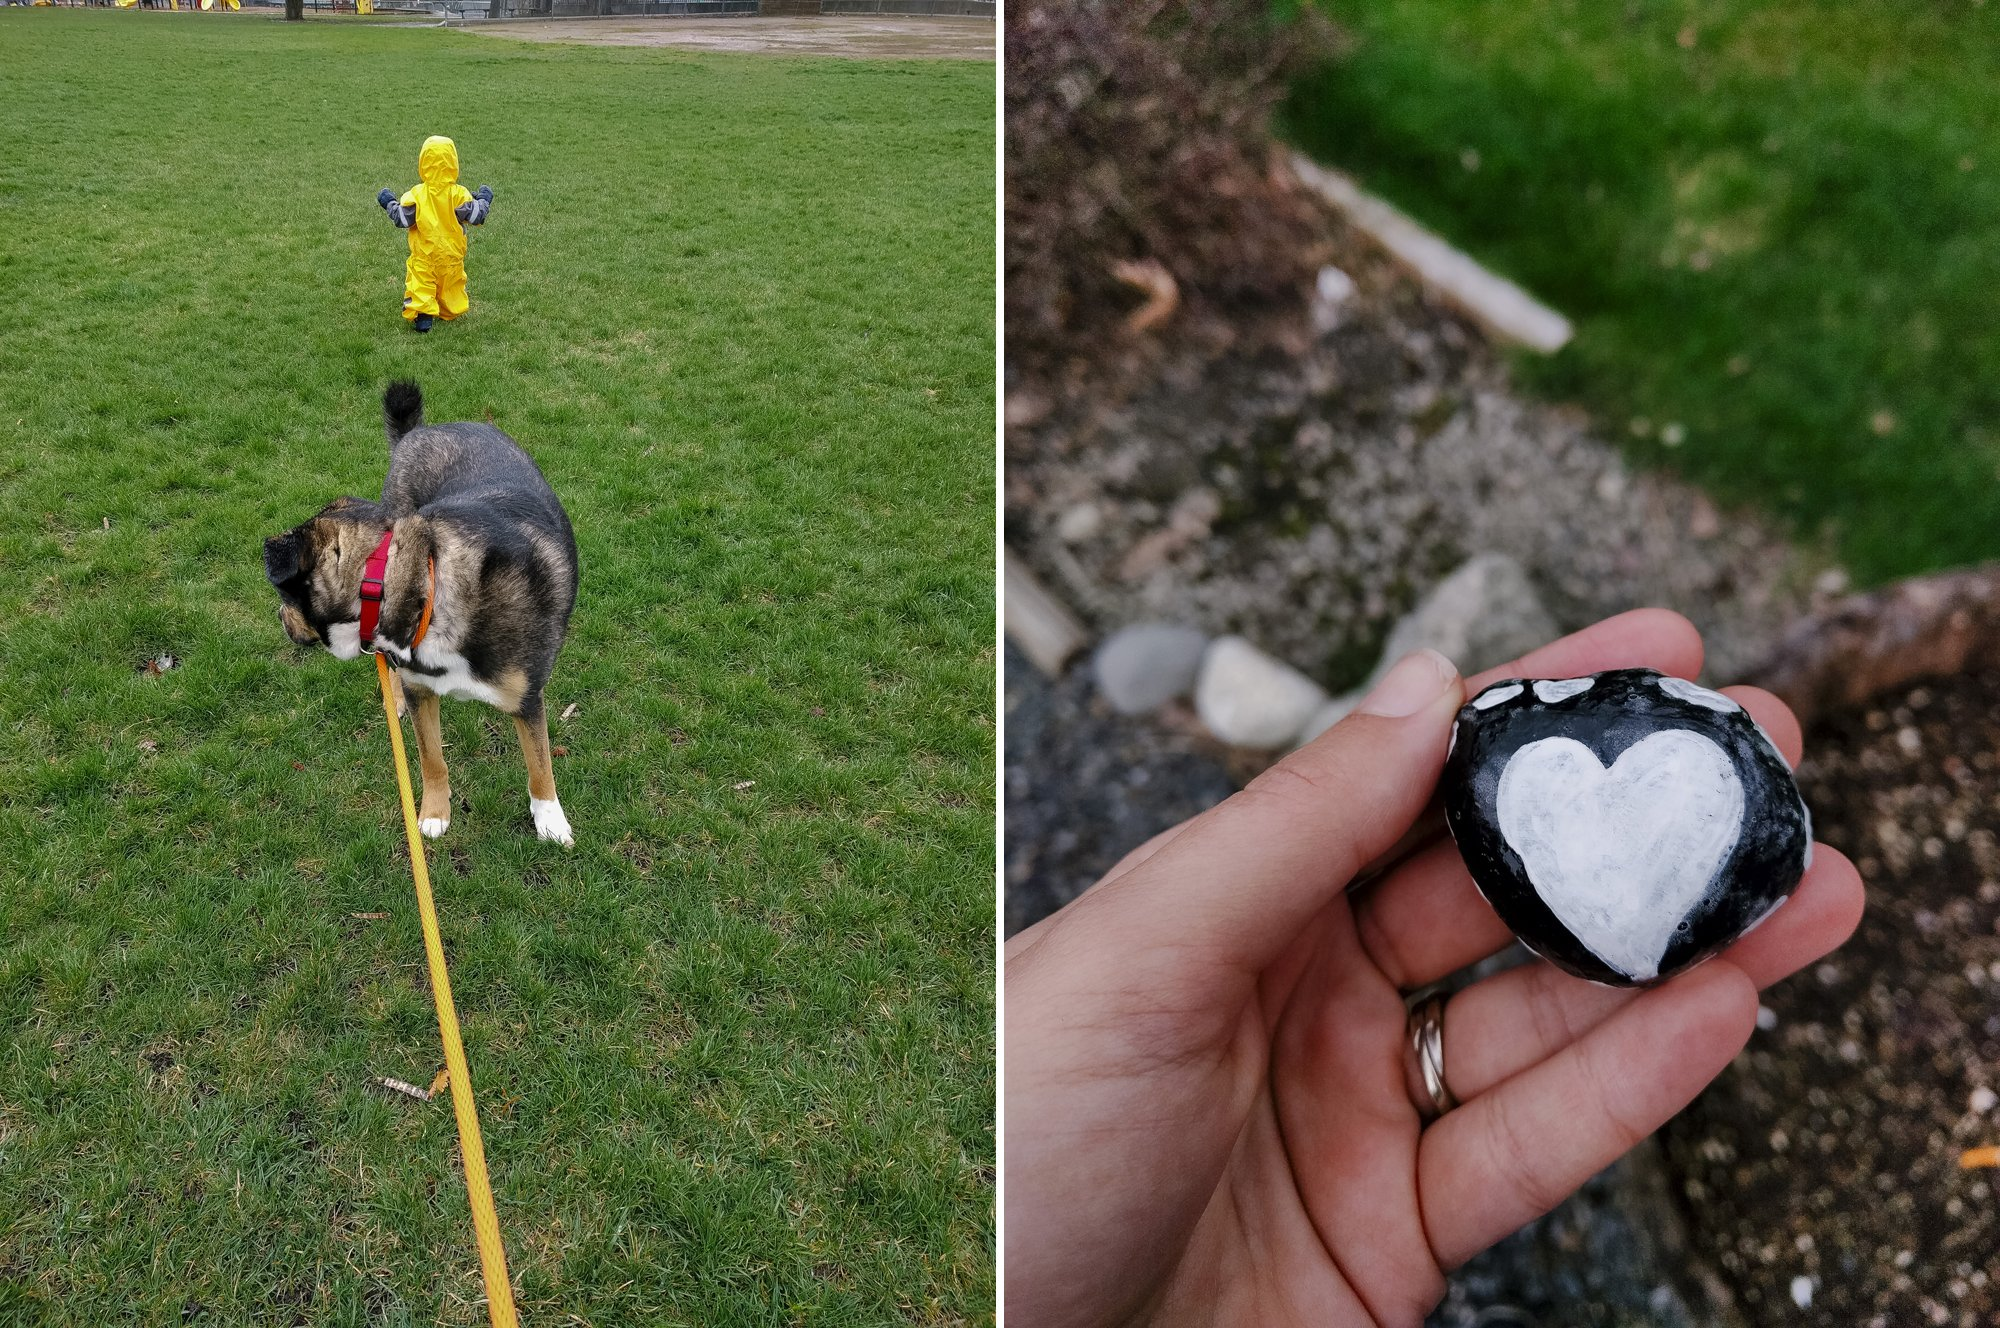 Hunting for rocks and playing in the rain is easier with an Oakiwear rain suit